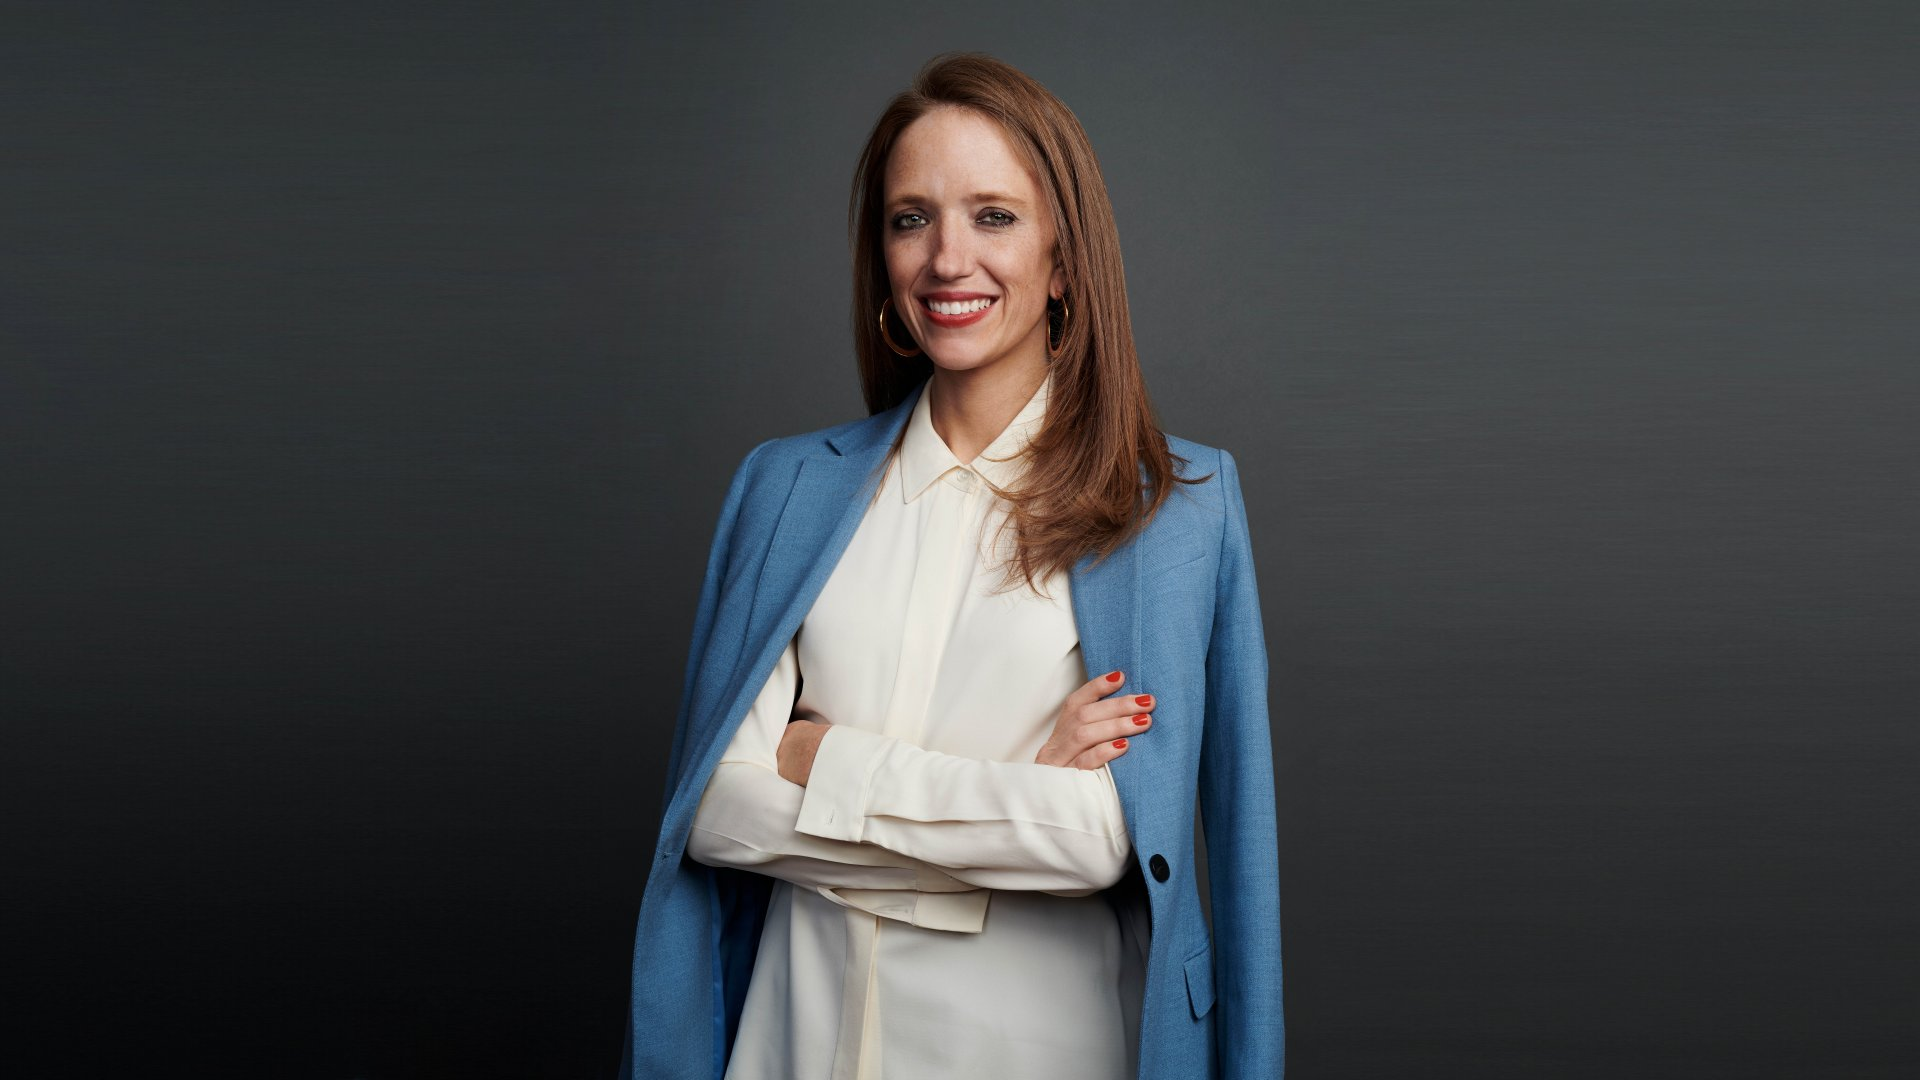 Kate Ryder, founder and CEO of Maven.